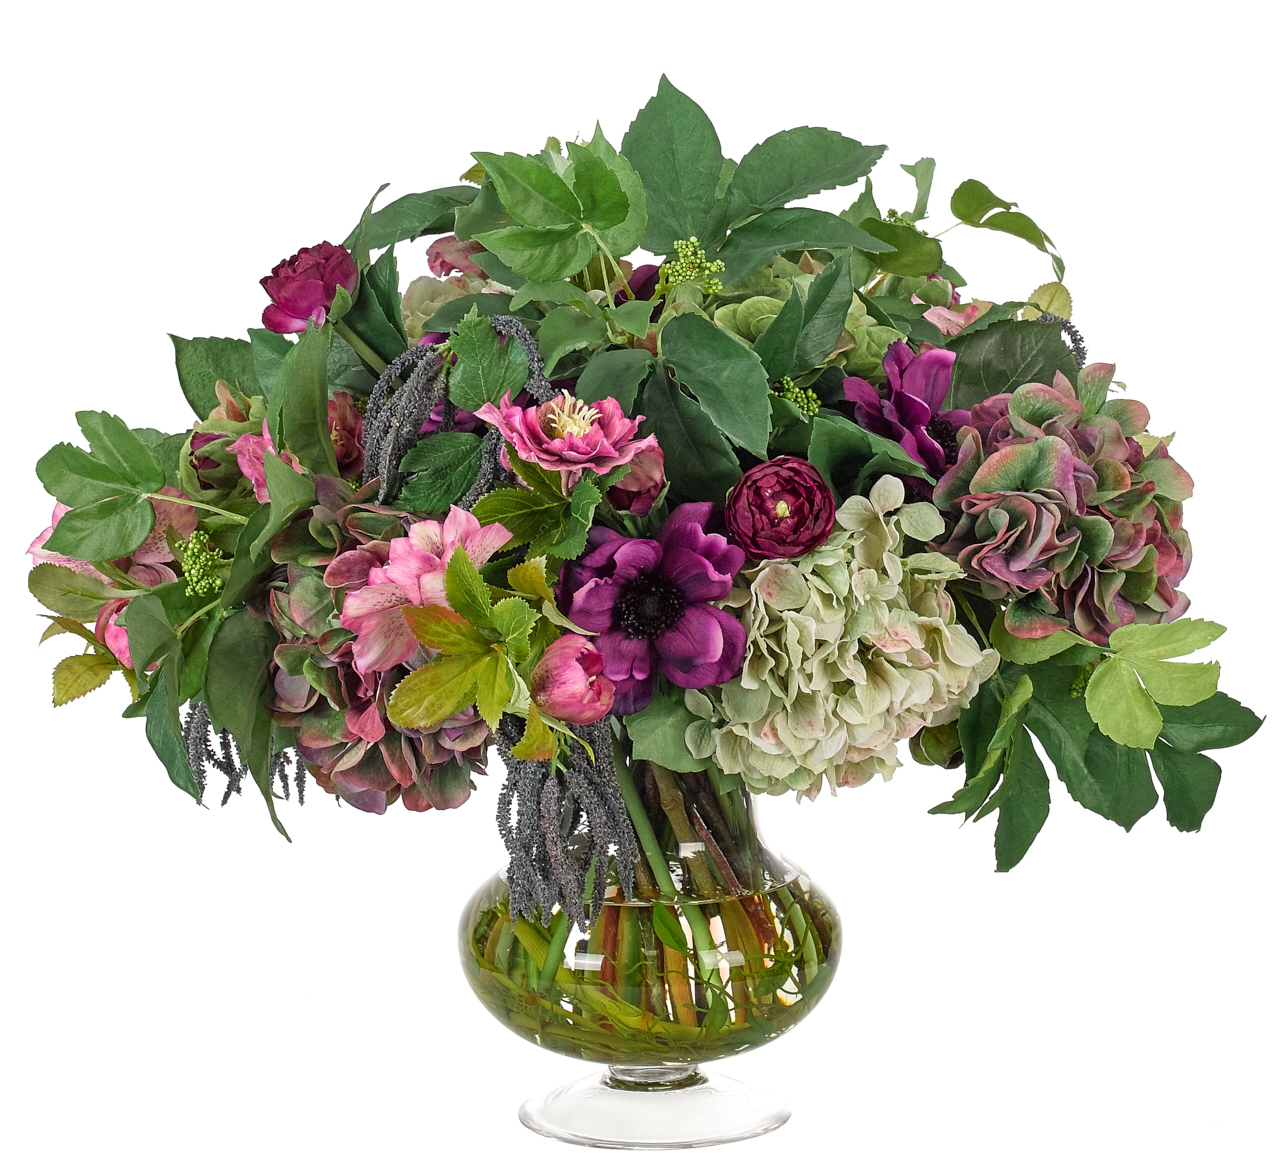 Hydrangea Anemone, Purple Green, Glass Urn, 26wx26dx22h